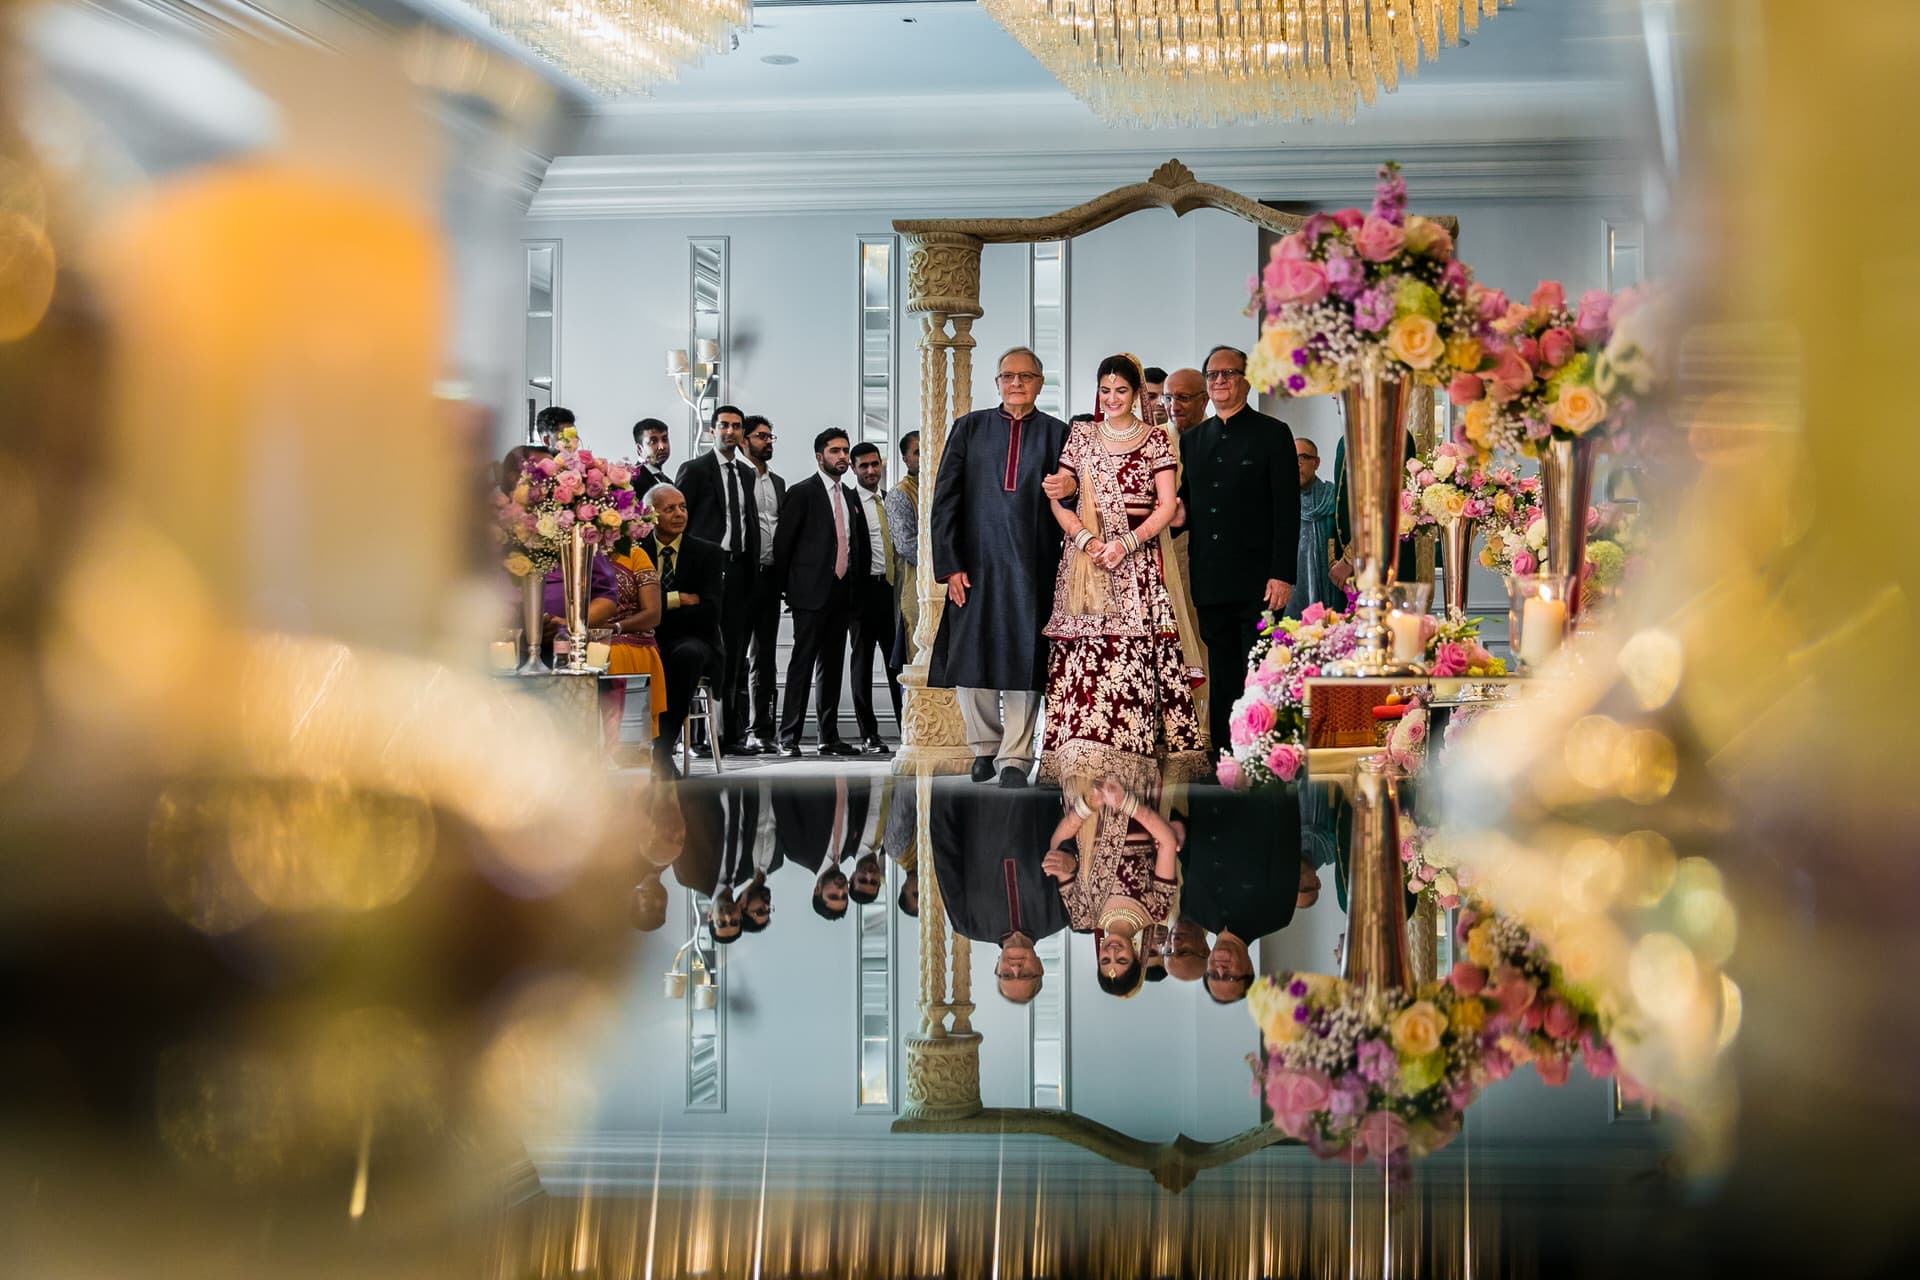 Seema and Kushal's Indian wedding at Sopwell House, St. Albans